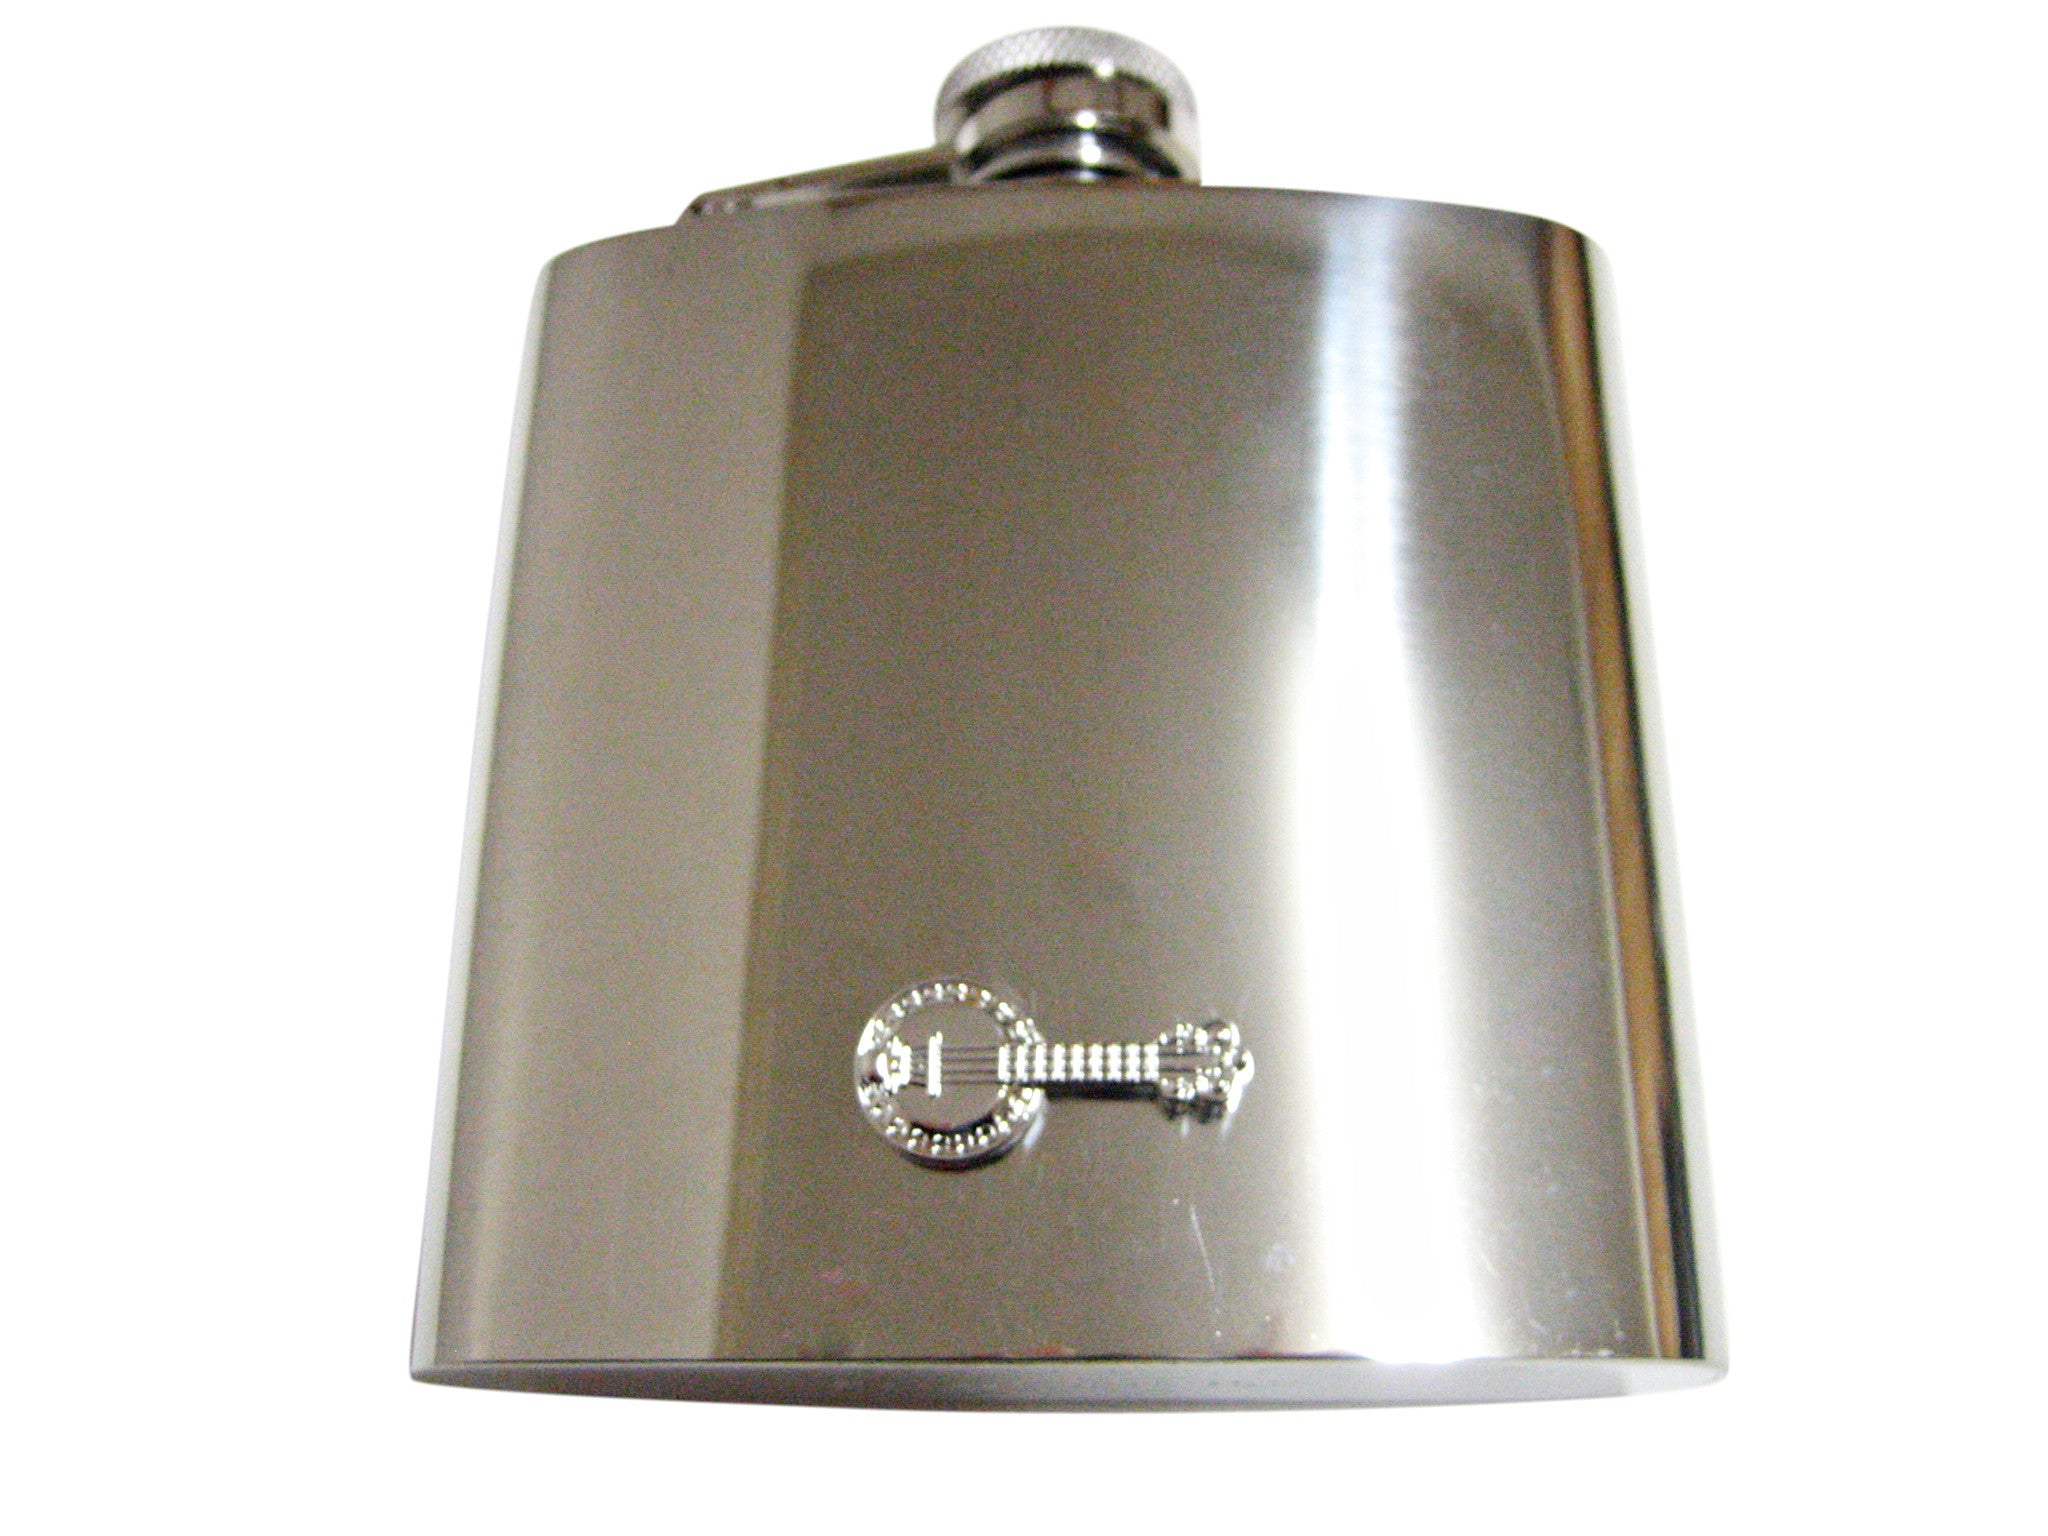 Silver Toned Banjo Musical Instrument 6 Oz. Stainless Steel Flask